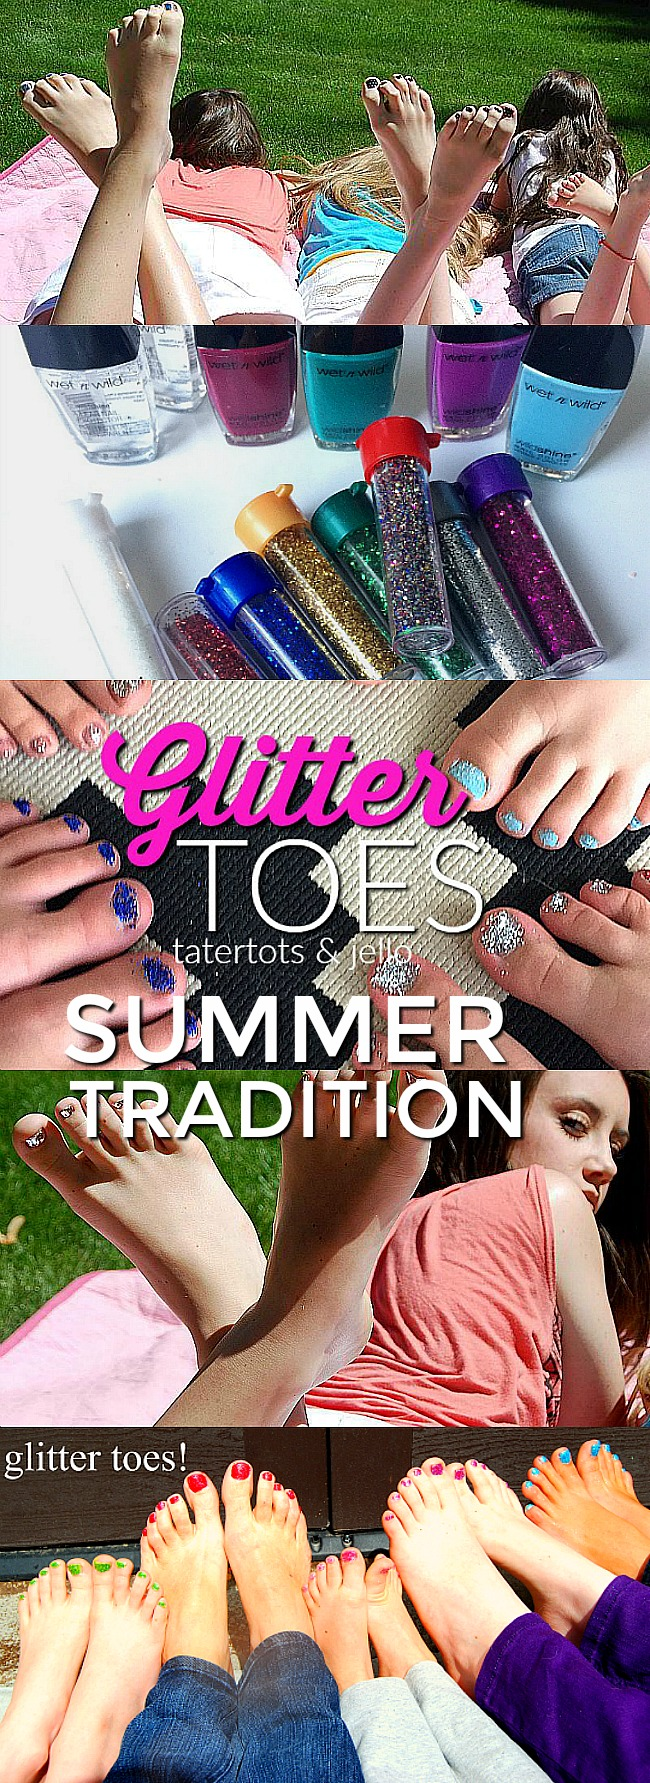 Glitter Toes Tutorial. Last Day of School Tradition - make glitter toes for summer! Your kids will love it!